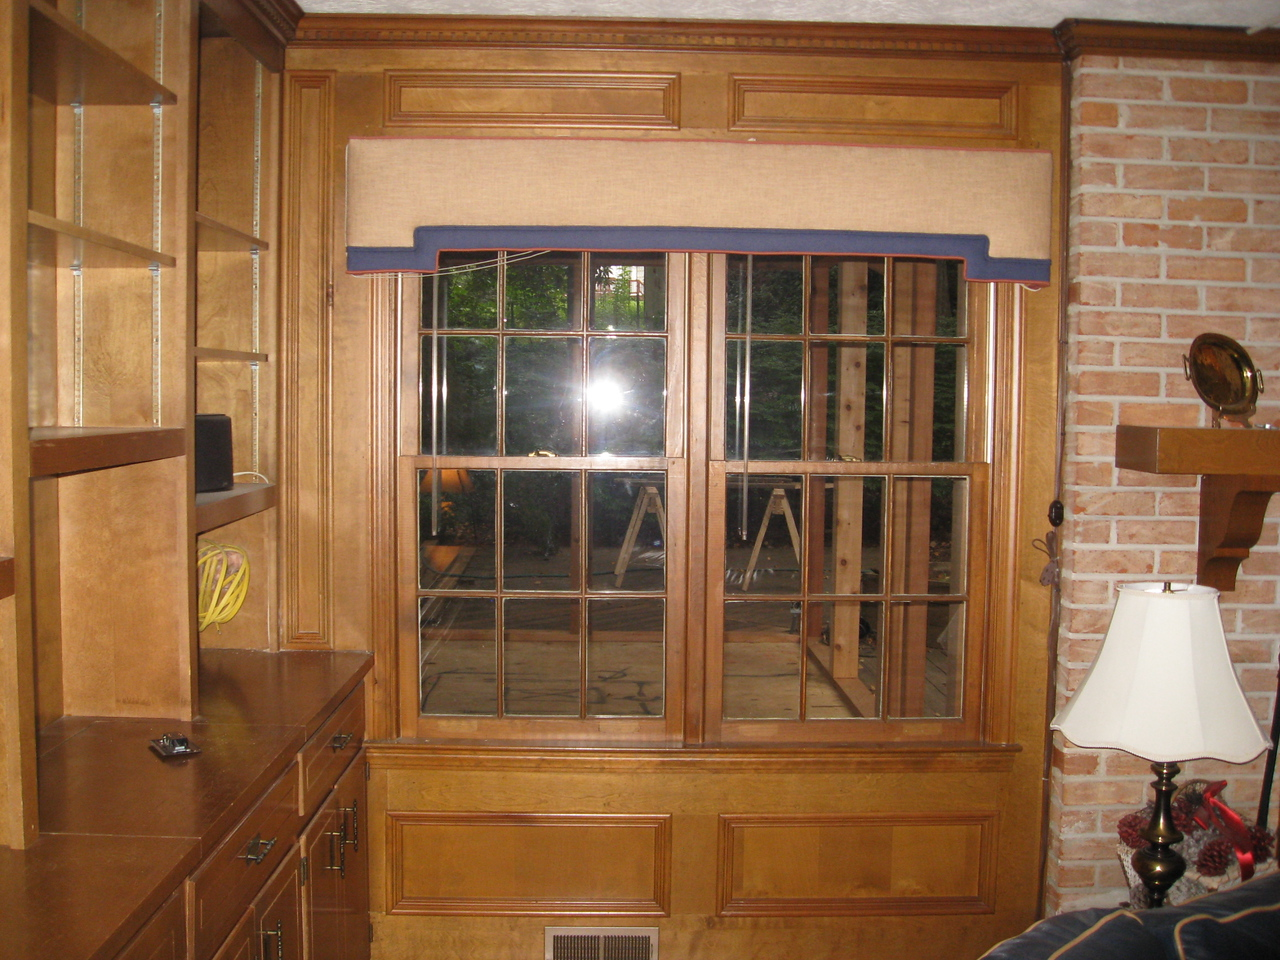 VIEW  FROM INSIDE OF HOUSE OF WINDOW THAT WAS REPLACED WITH SLIDING DOOR.